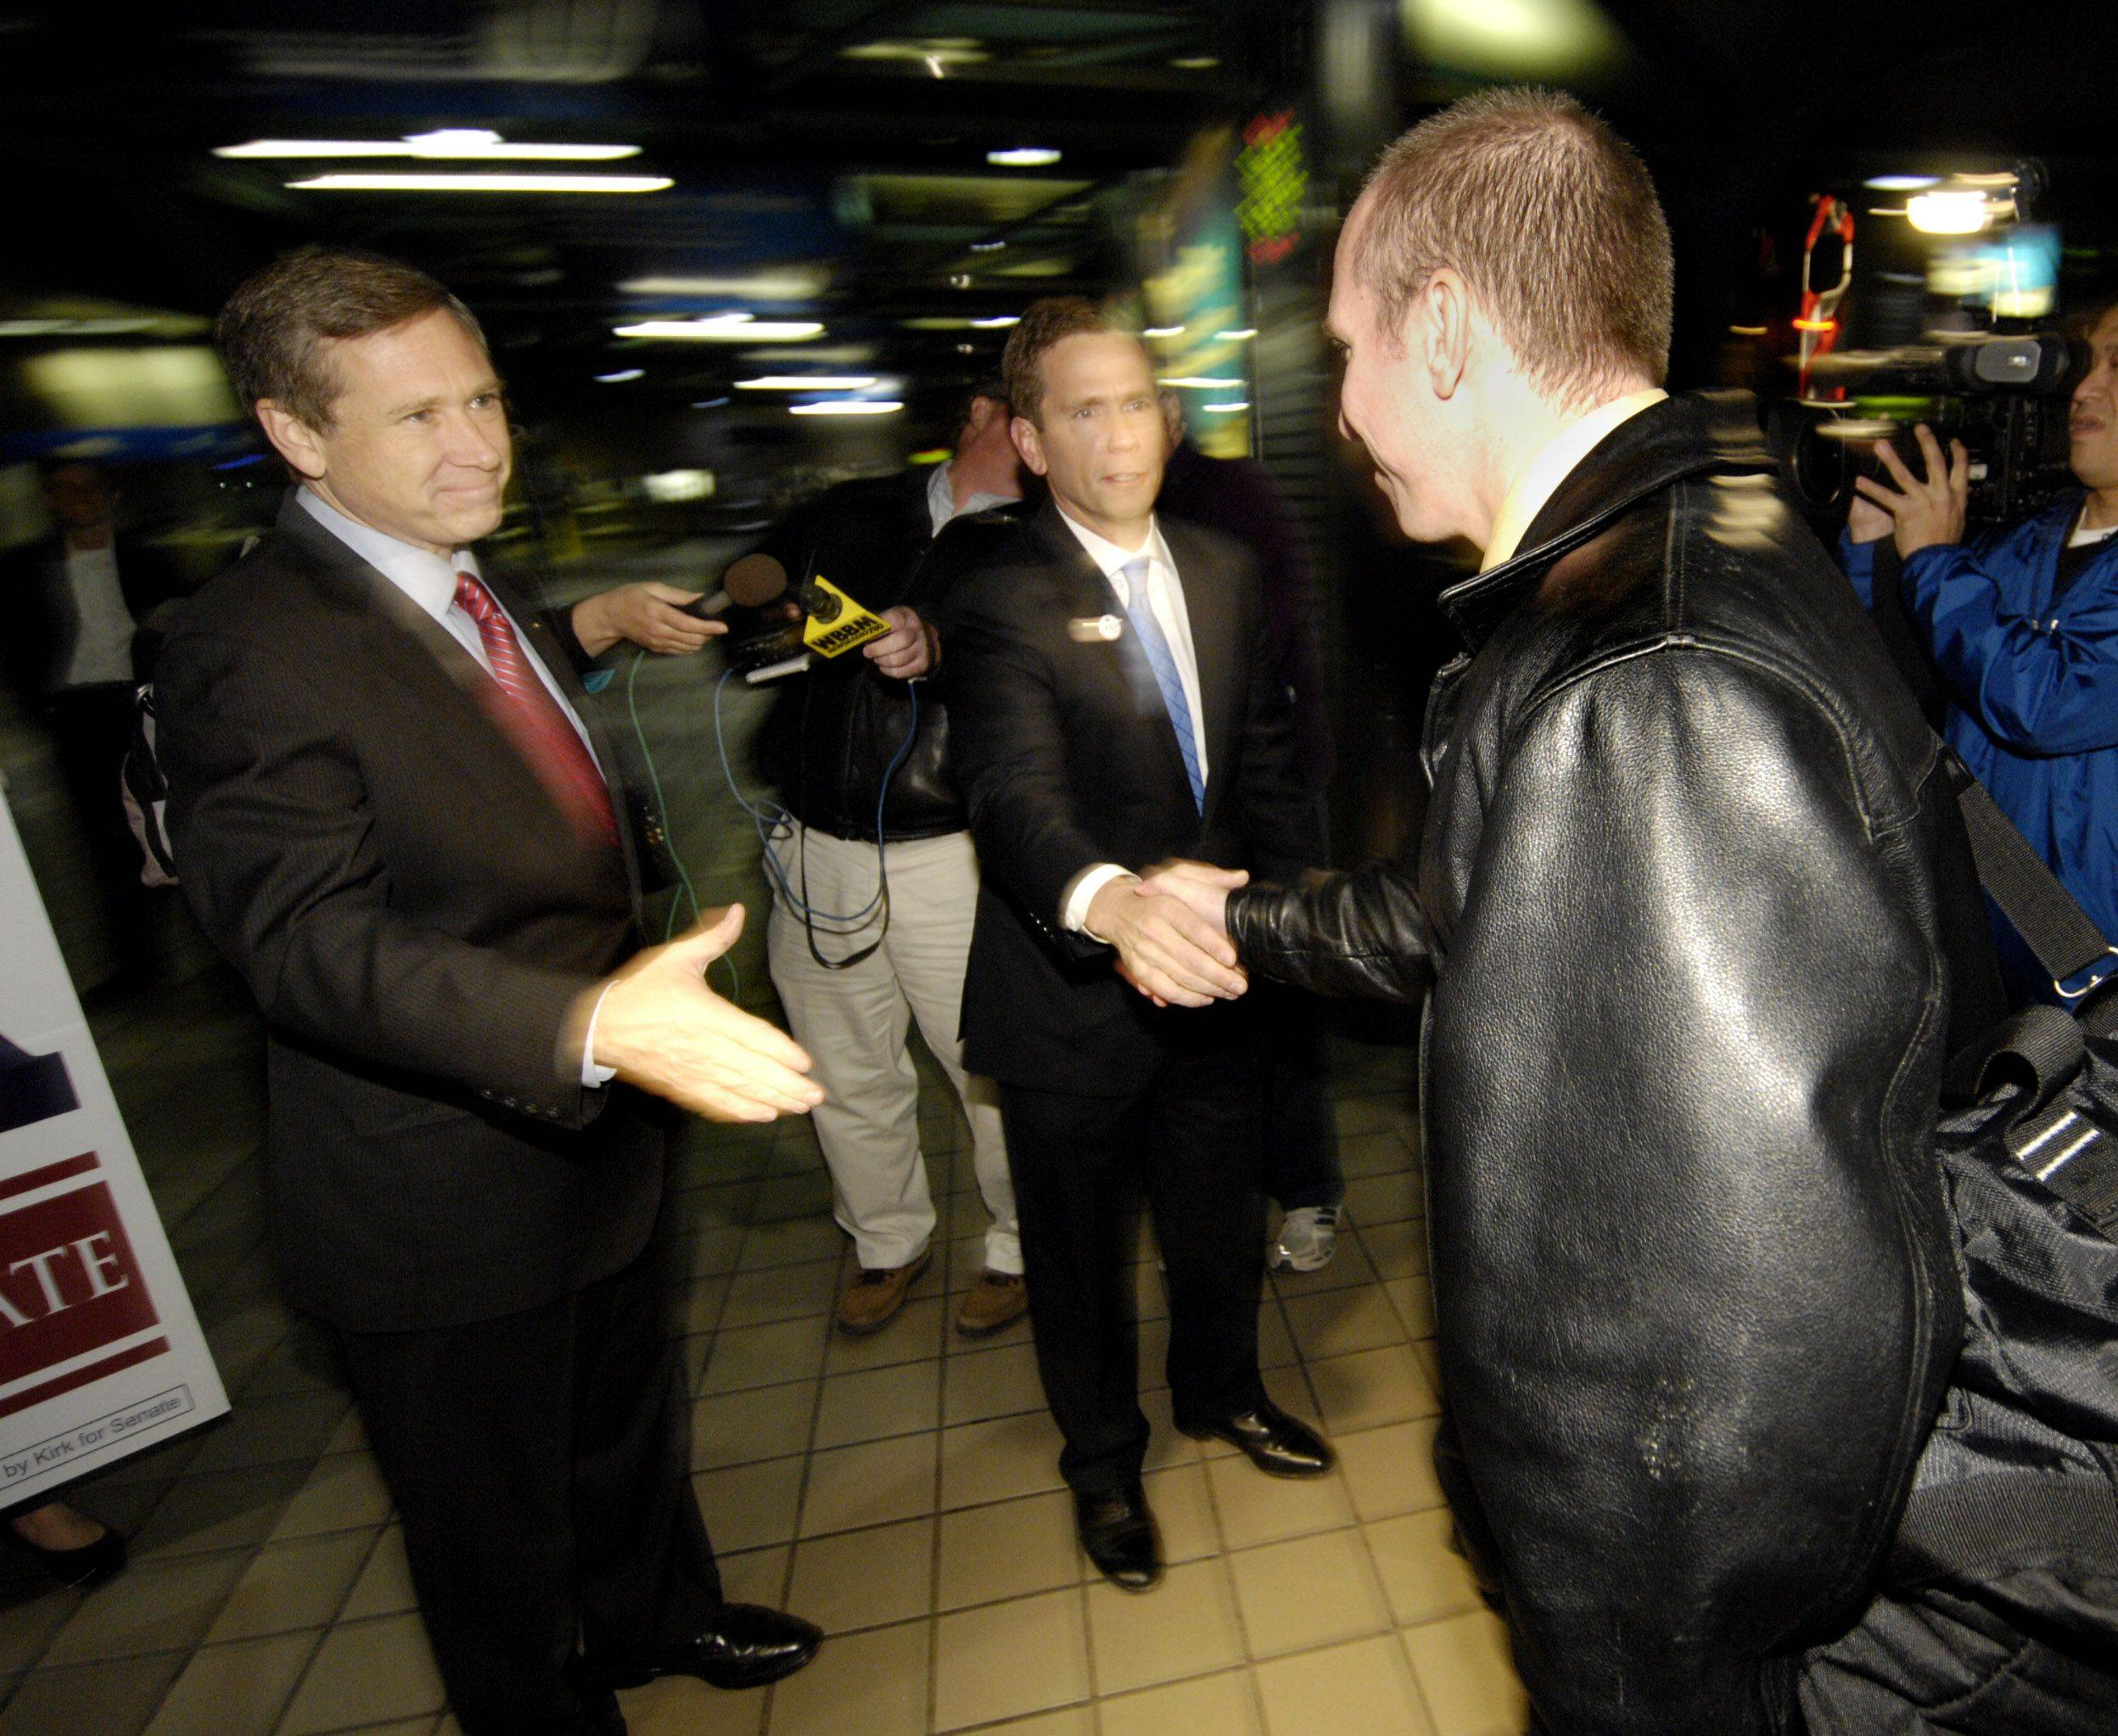 U.S. Senator-elect Mark Kirk and Congressman-elect Robert Dold greet commuters at the Ogilvie Transportation Center in Chicago.